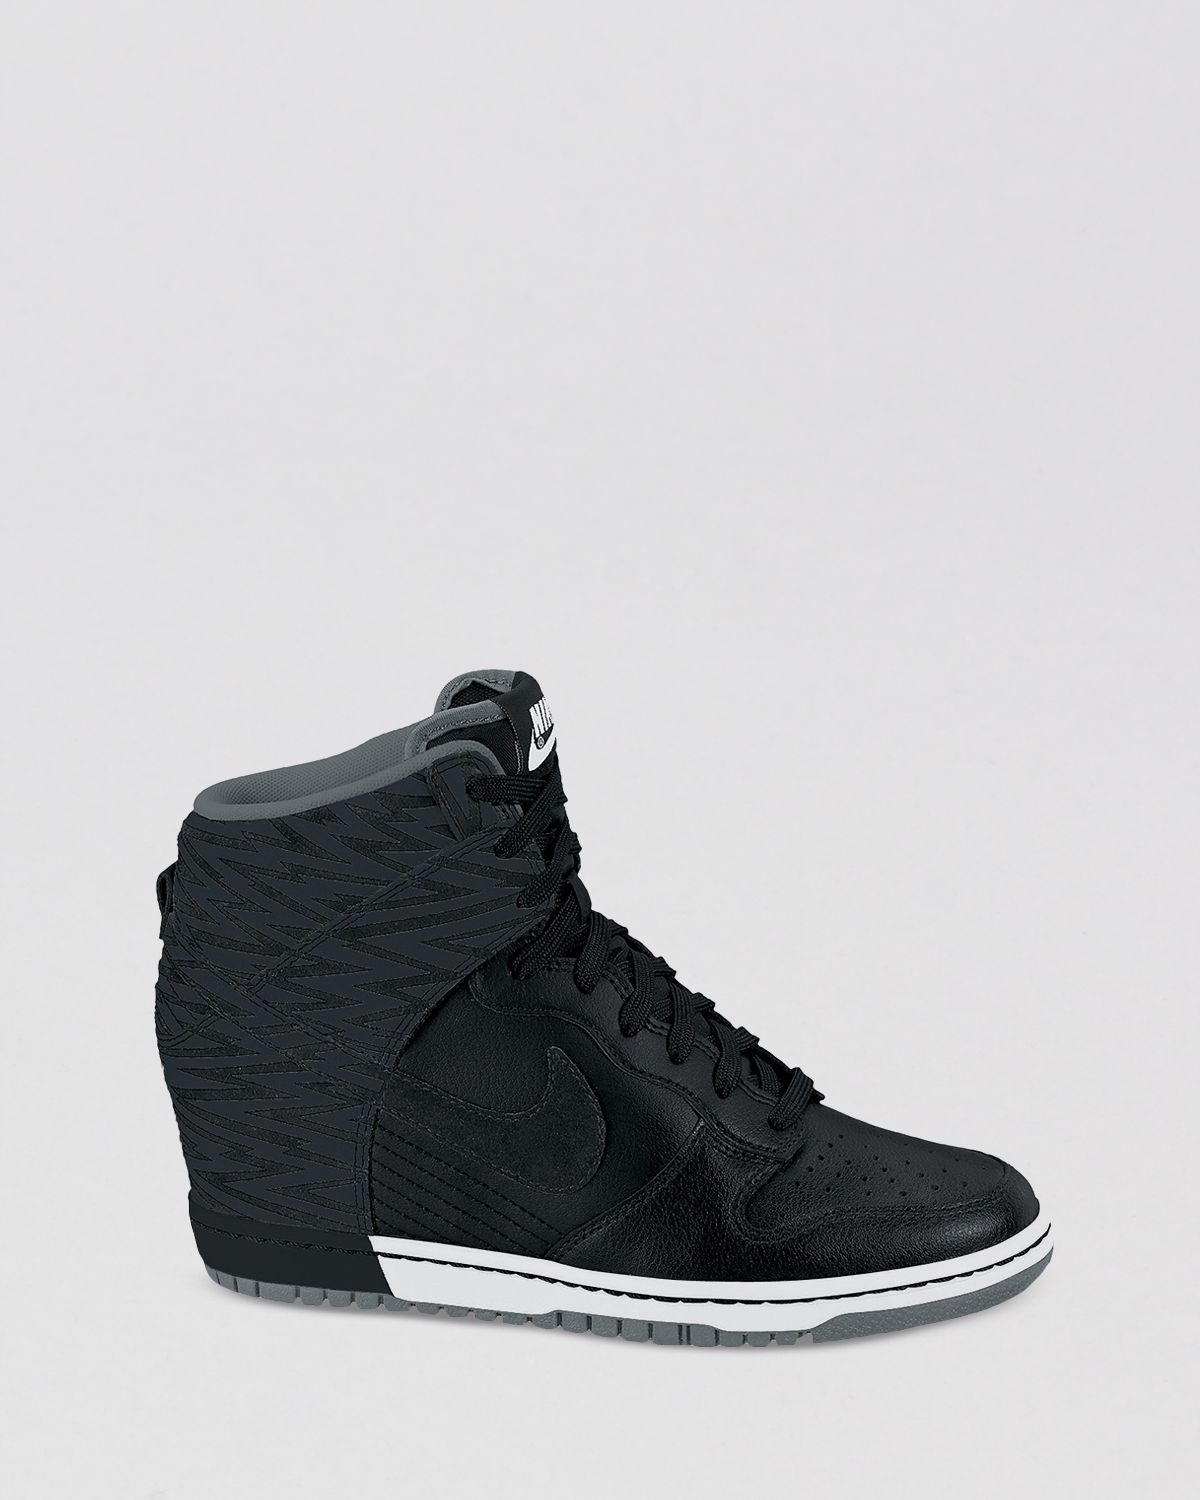 Nike Lace Up High Top Wedge Sneakers Womens Dunk Sky Hi in ...